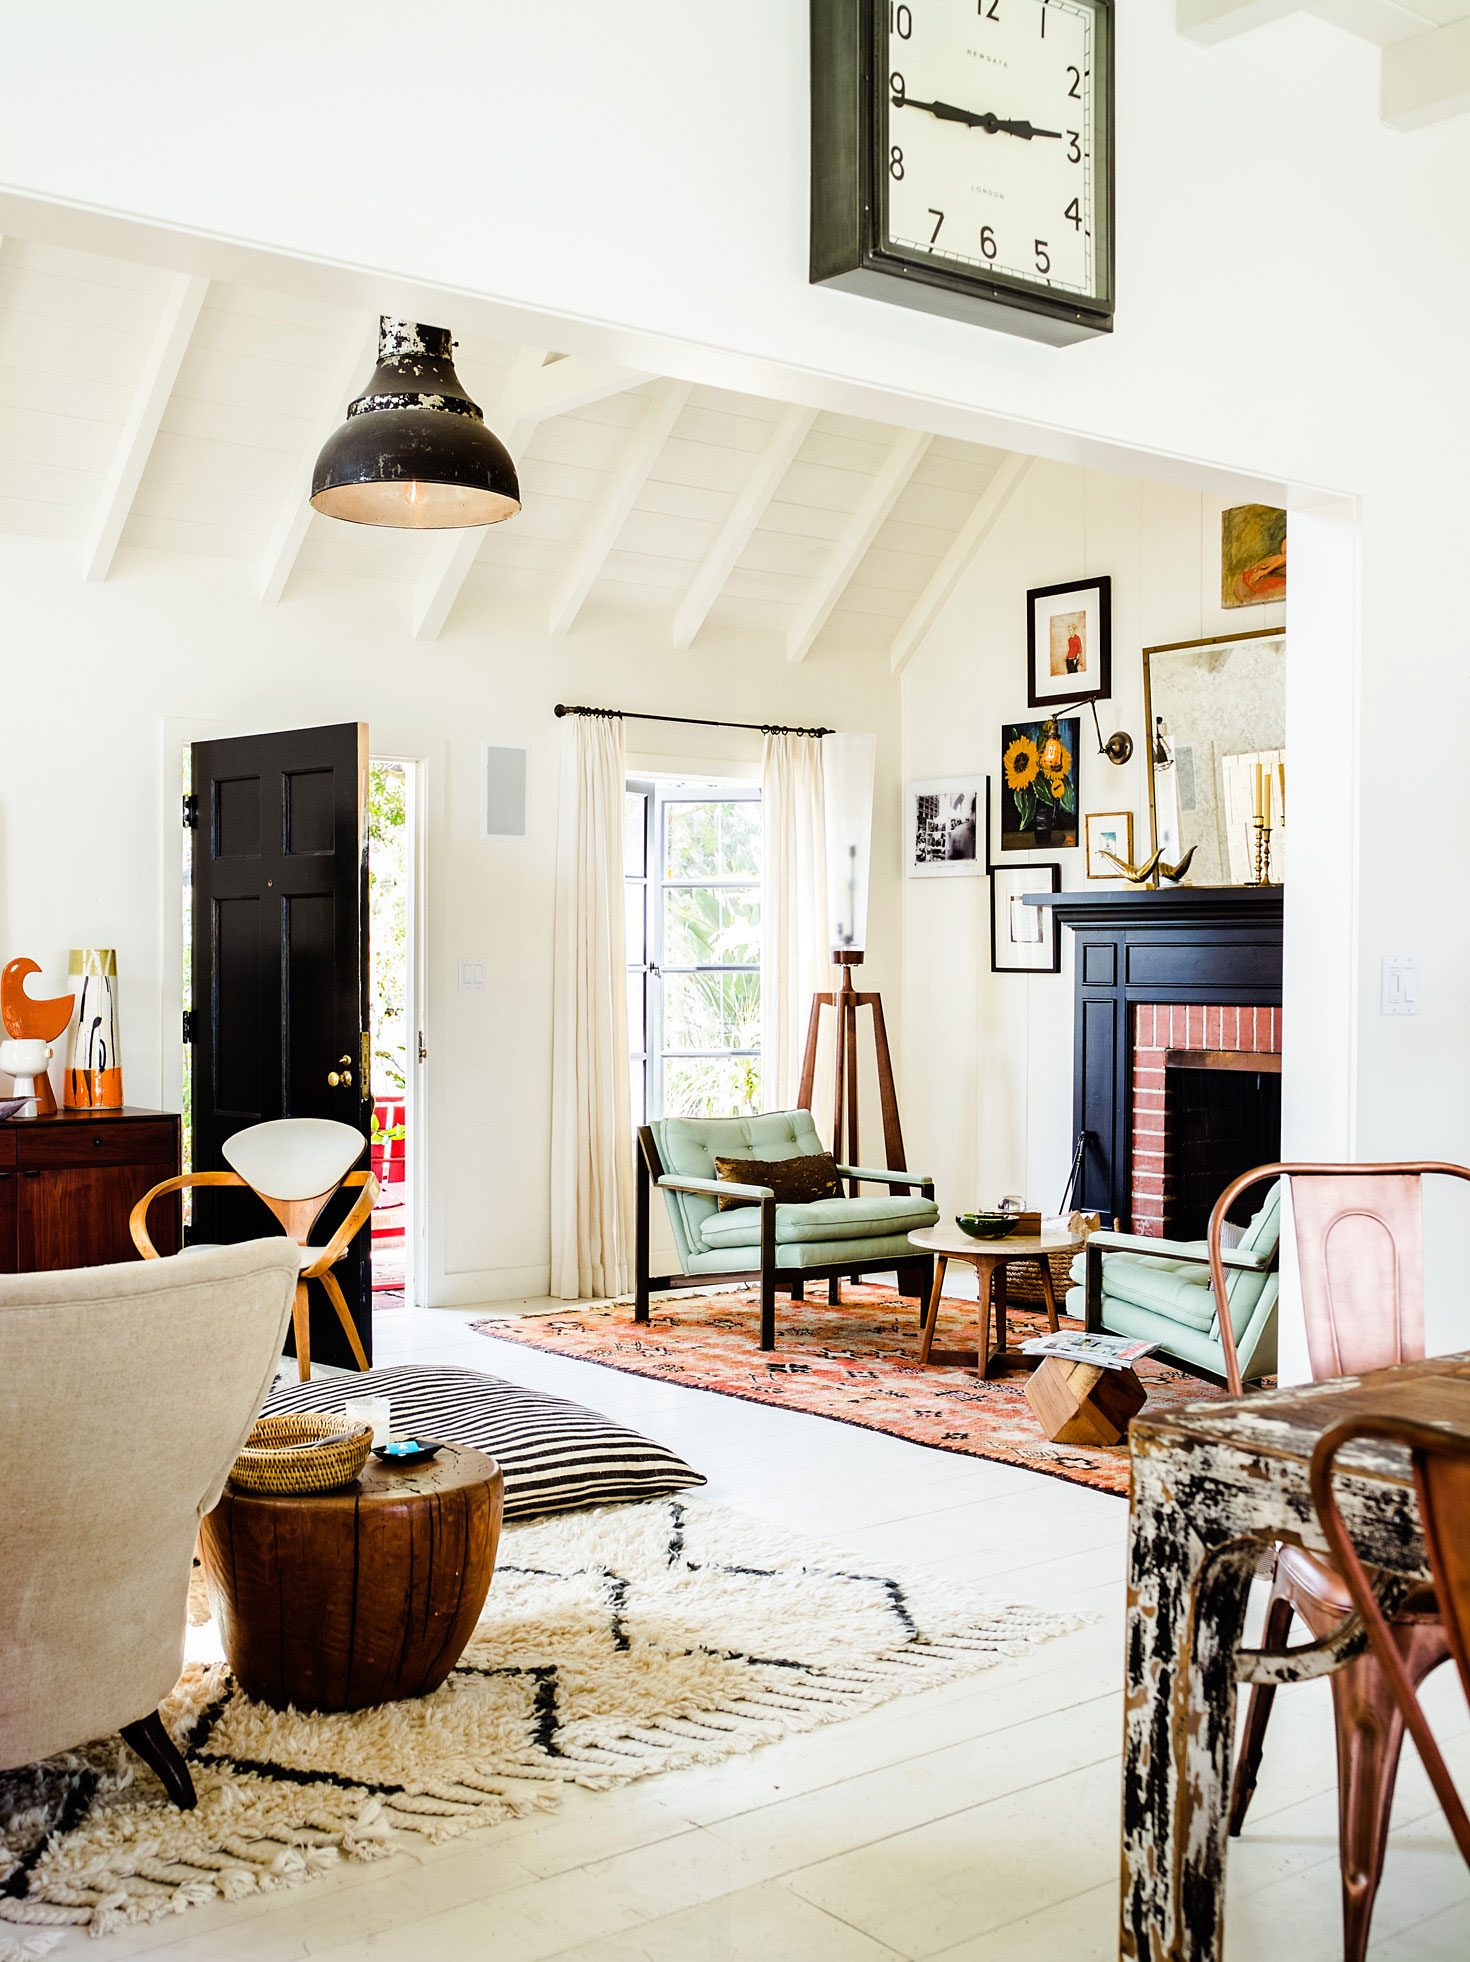 How to Design a Beach Cottage - Sunset Magazine